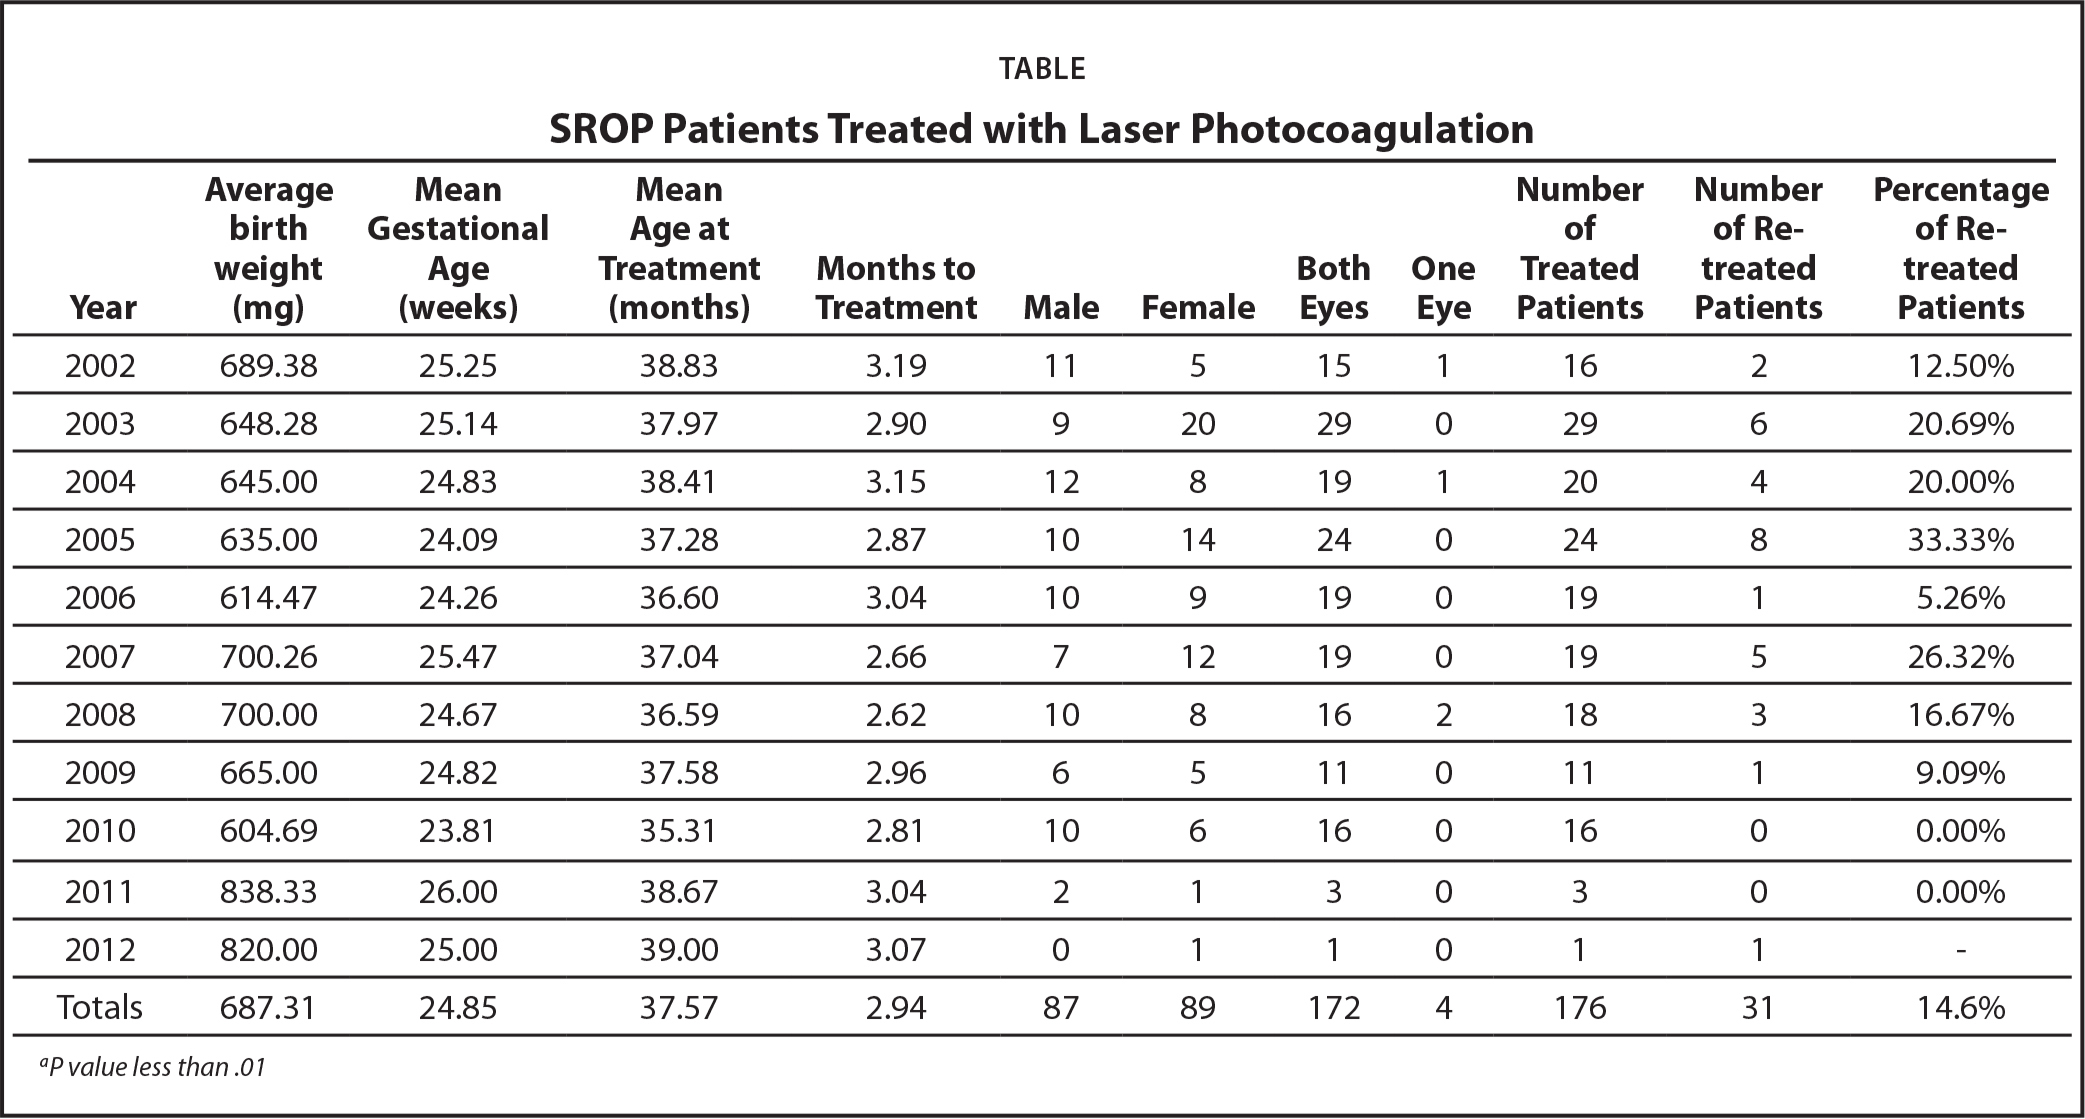 SROP Patients Treated with Laser Photocoagulation